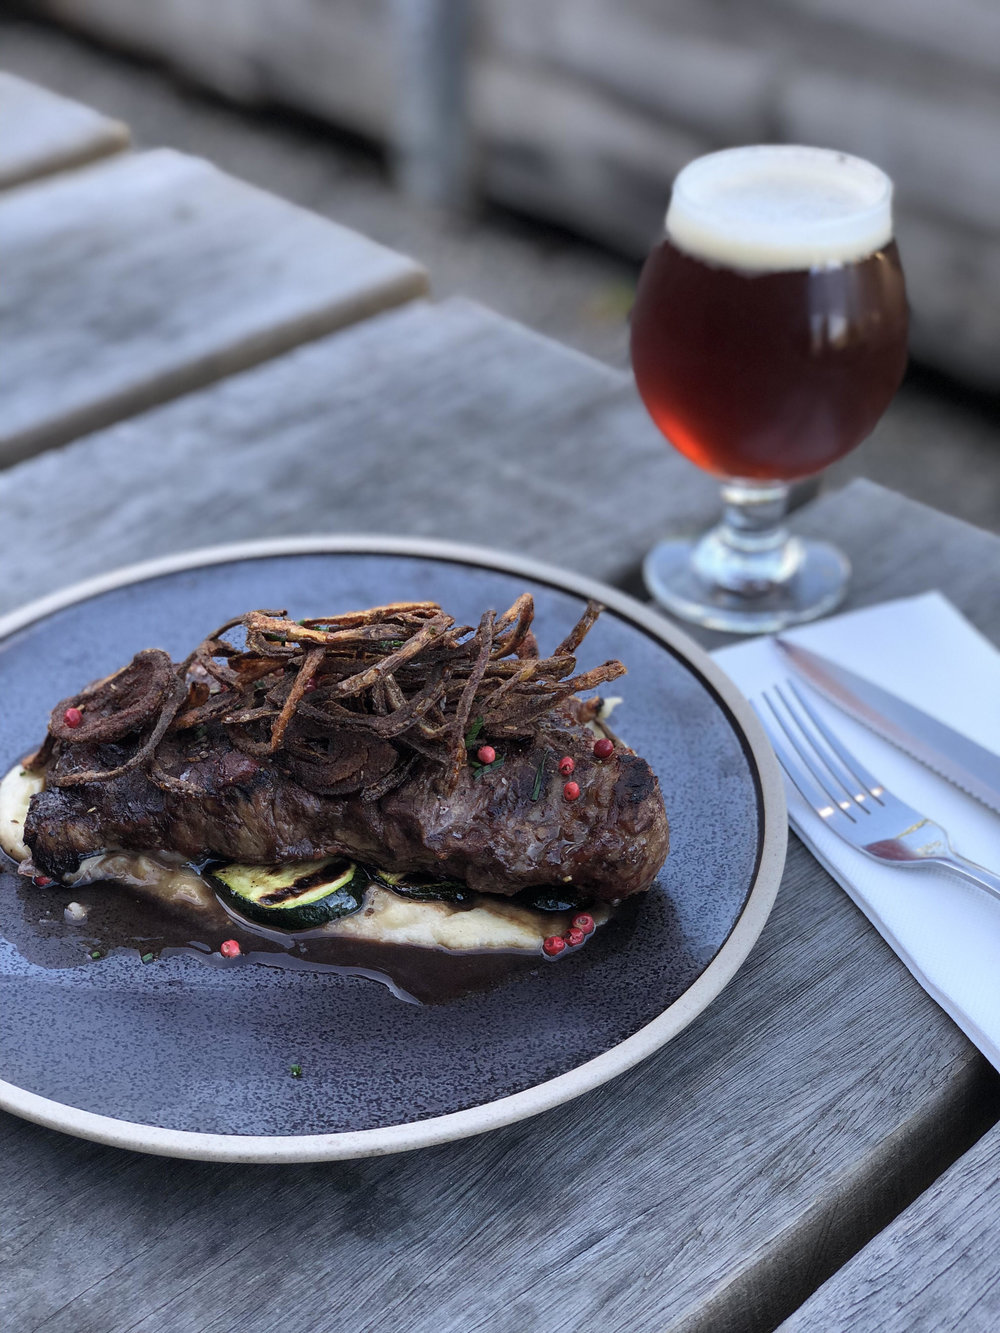 This Thursday from the chargrill -  300gram chargrilled porterhouse on a creamy artichoke mash and grilled zucchini, served with crispy fried onions plus your choice of beer or cider, straight from our taps *regular menu still available*Click here to book your table now.